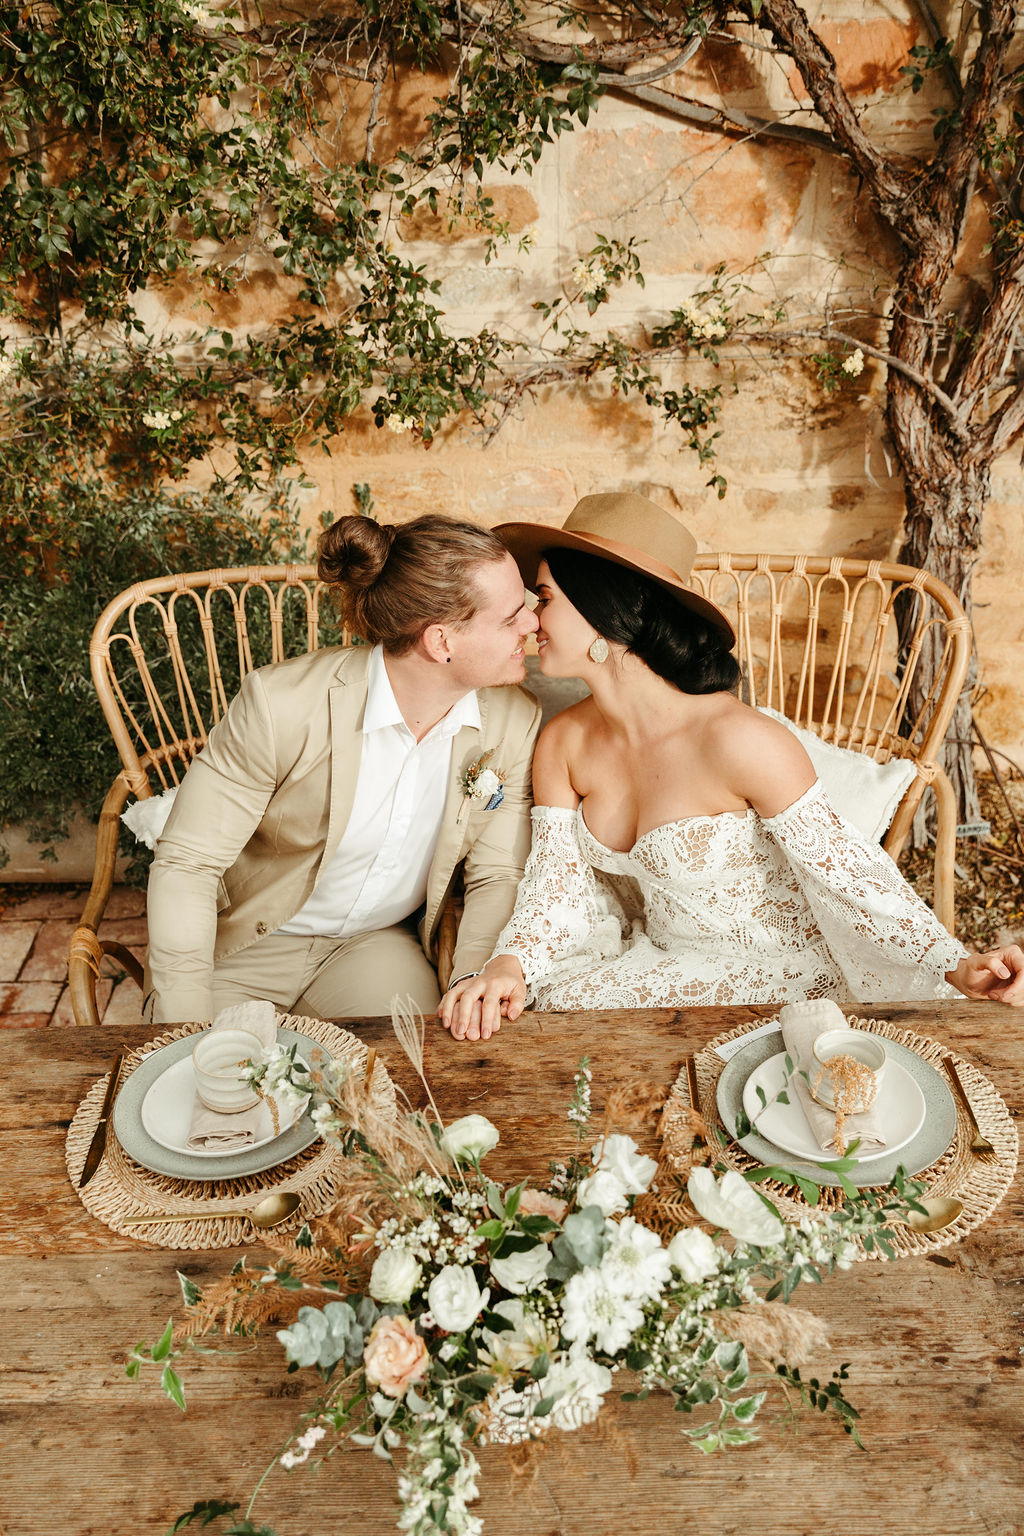 jessica mary photography adelaide hills weddings photography bridal gown floral design boho bride decor